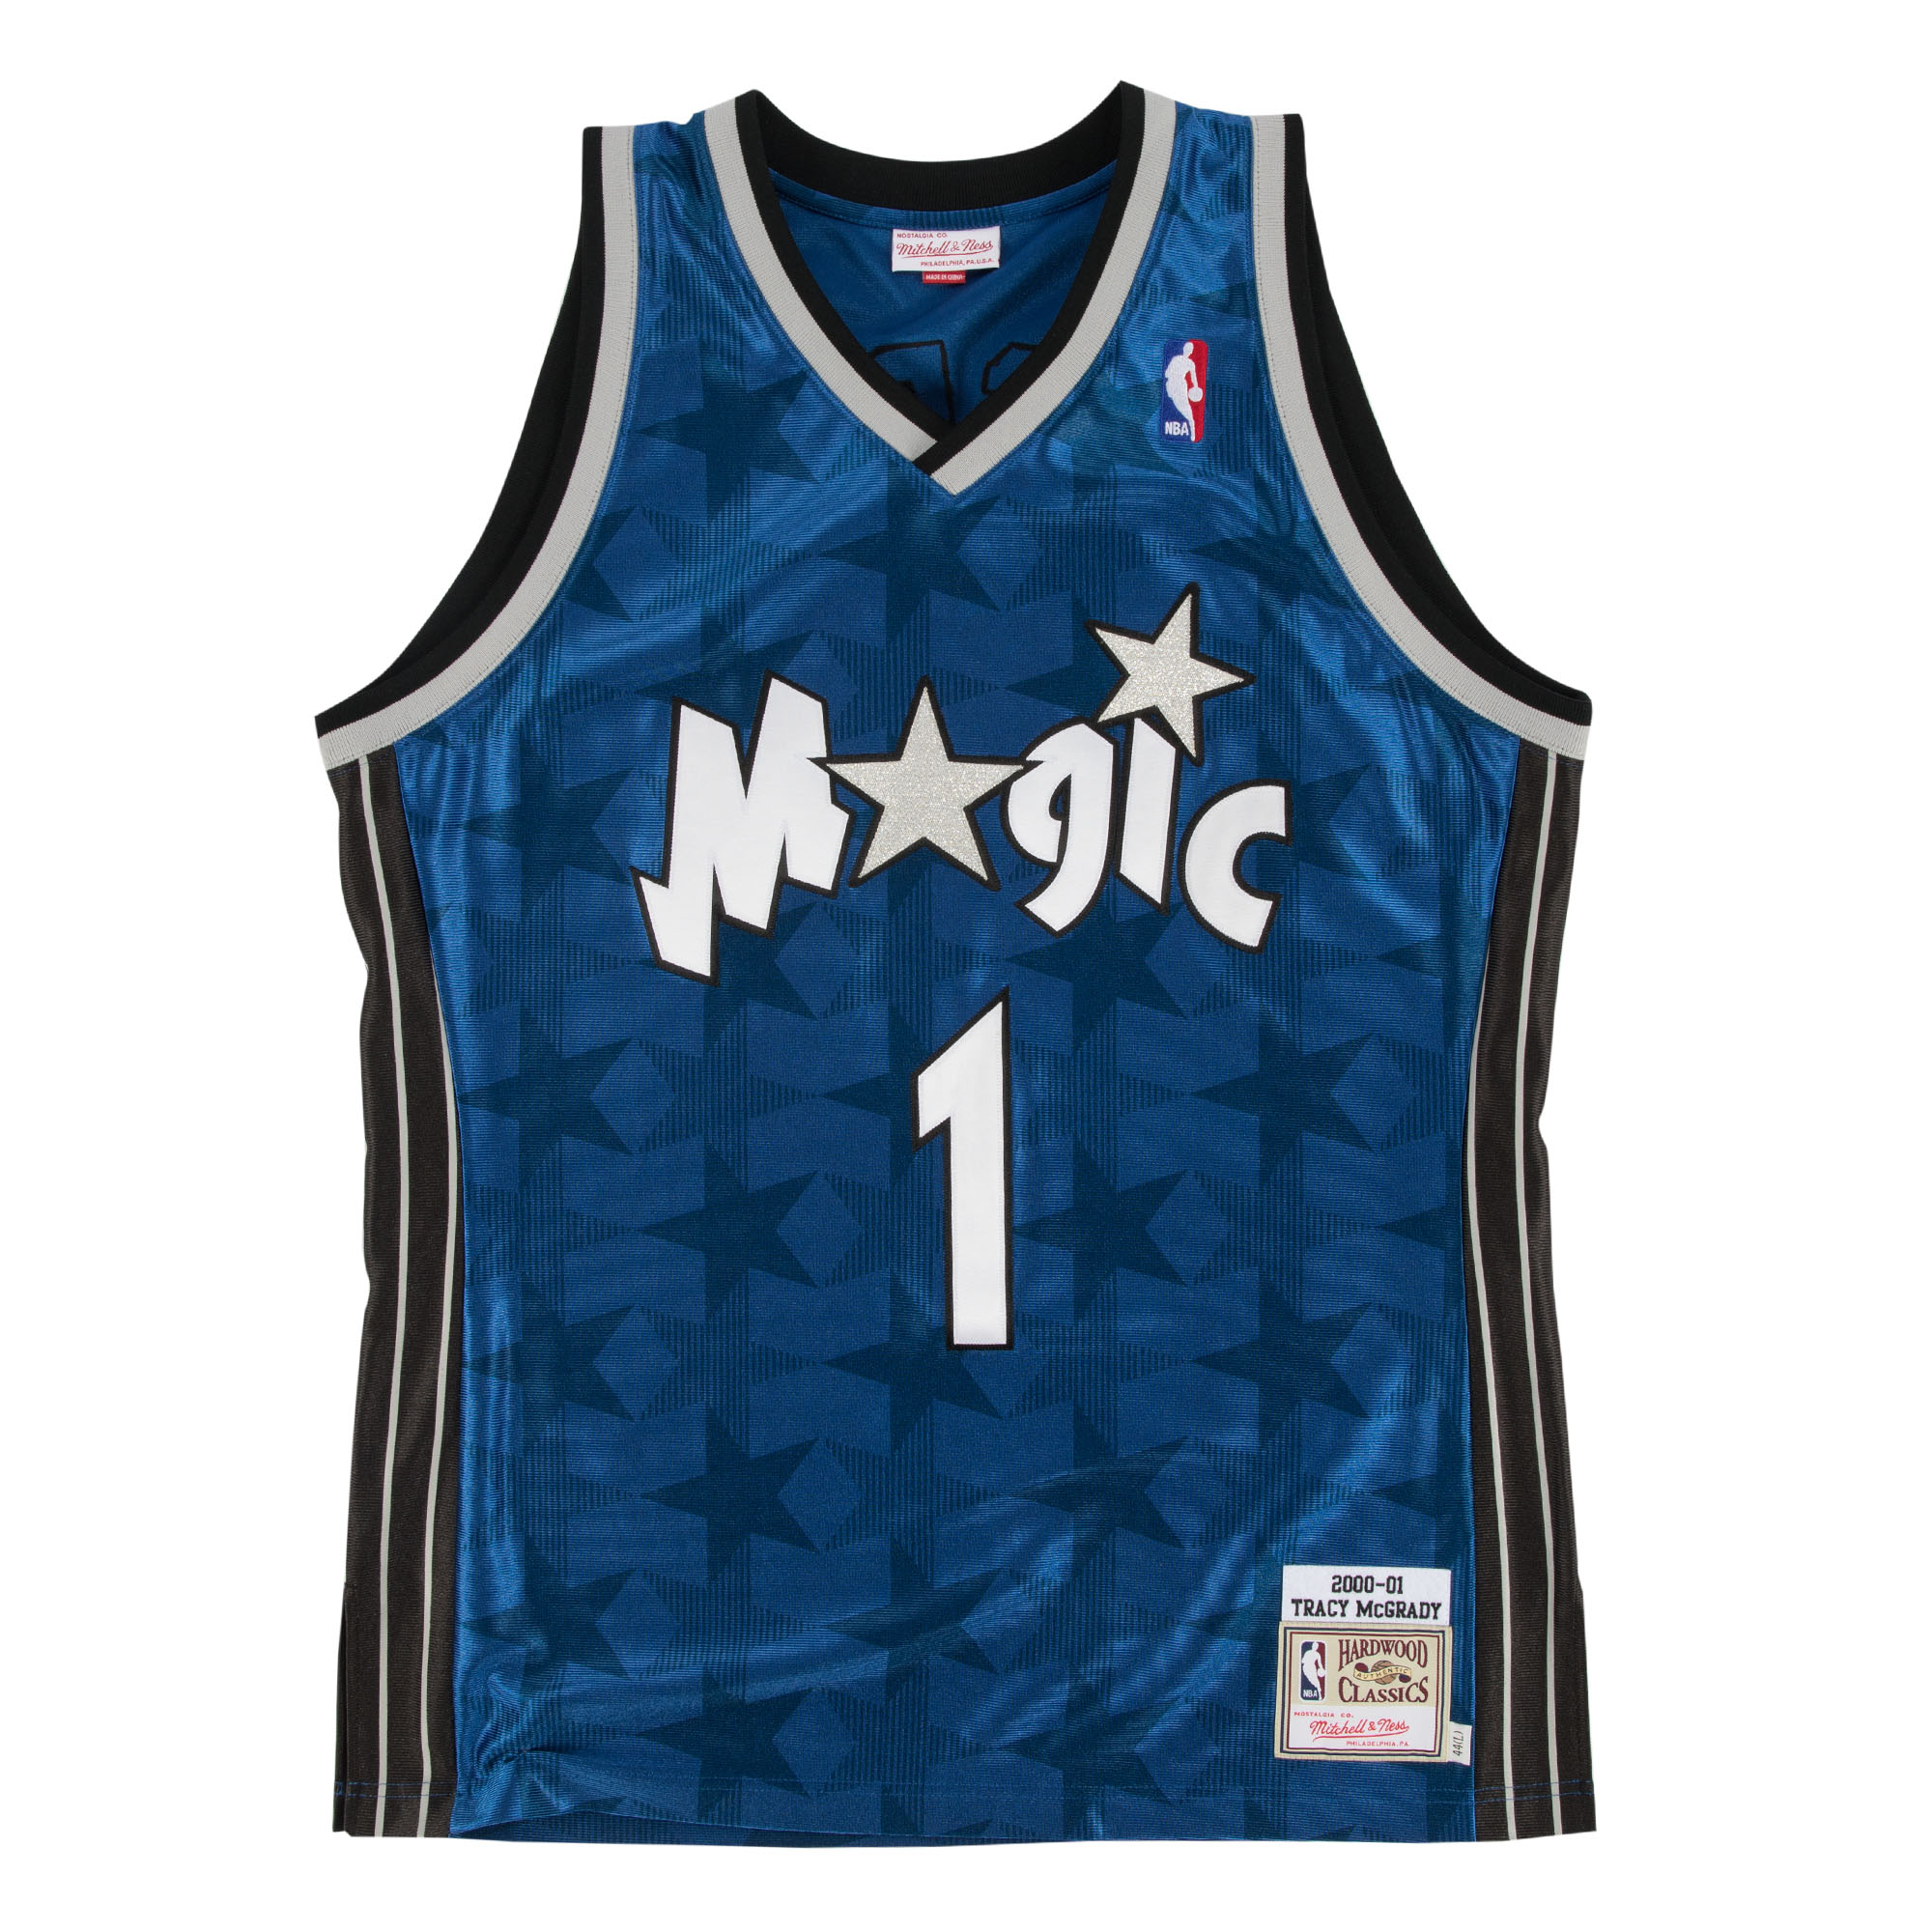 c783a7fe promo code for nba jerseys orlando magic 15 carter blue jerseys 623ff 2a9c6